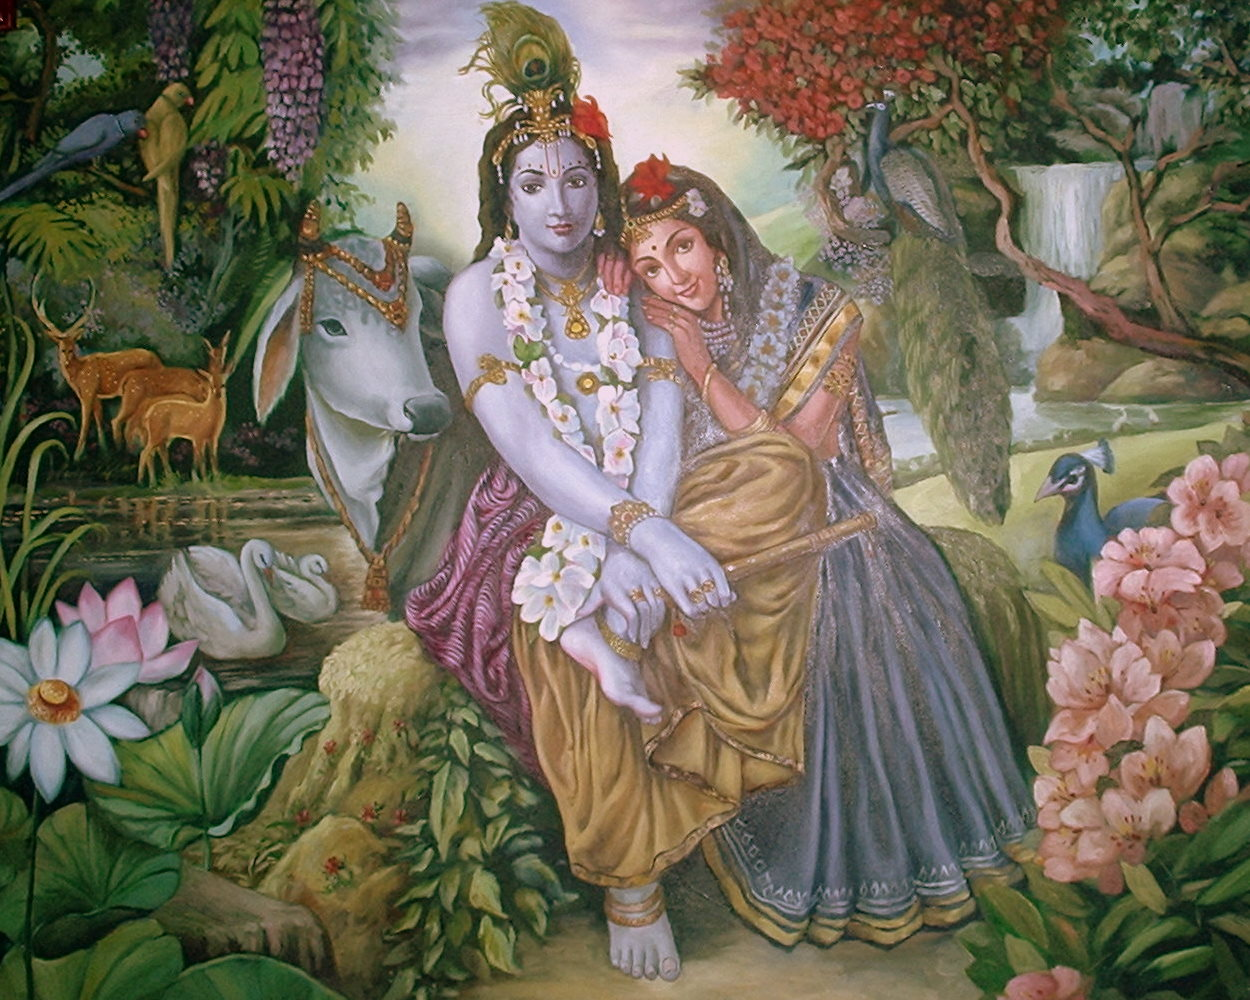 Radha Krishna by Balaji Photography via Flickr